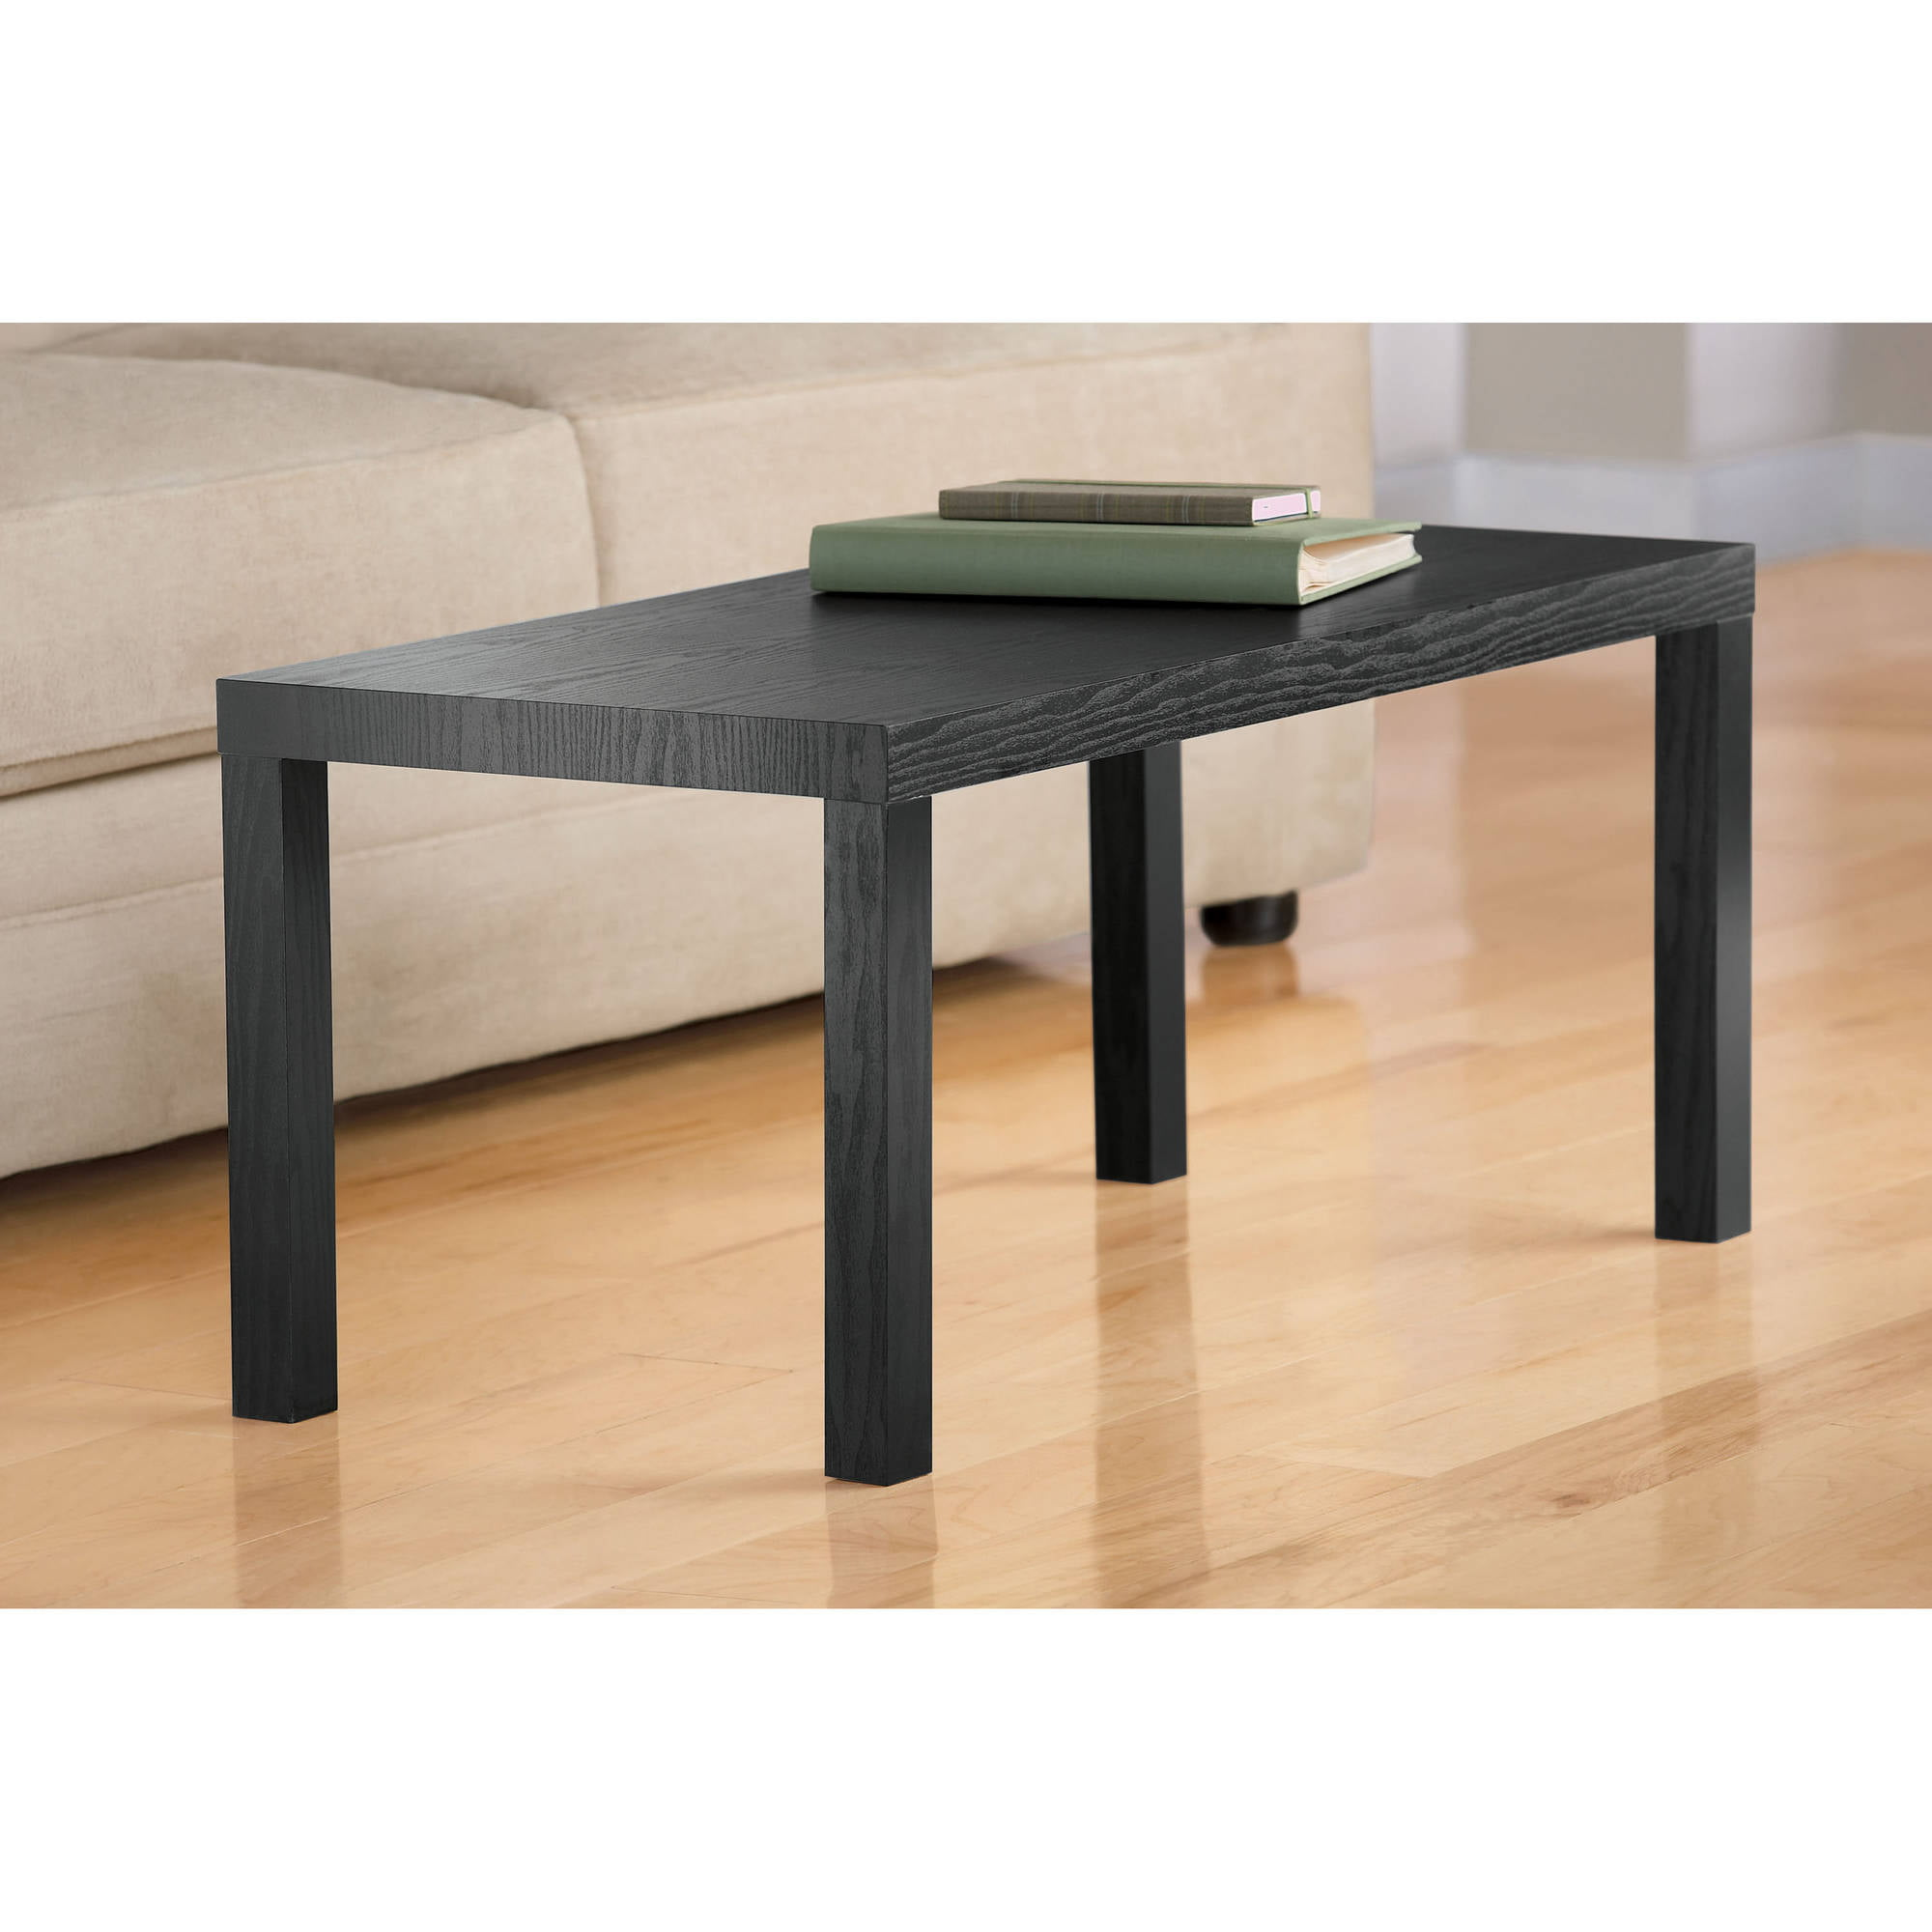 amazing living room end table.  DHP Parsons Coffee Table Multiple Colors Walmart com